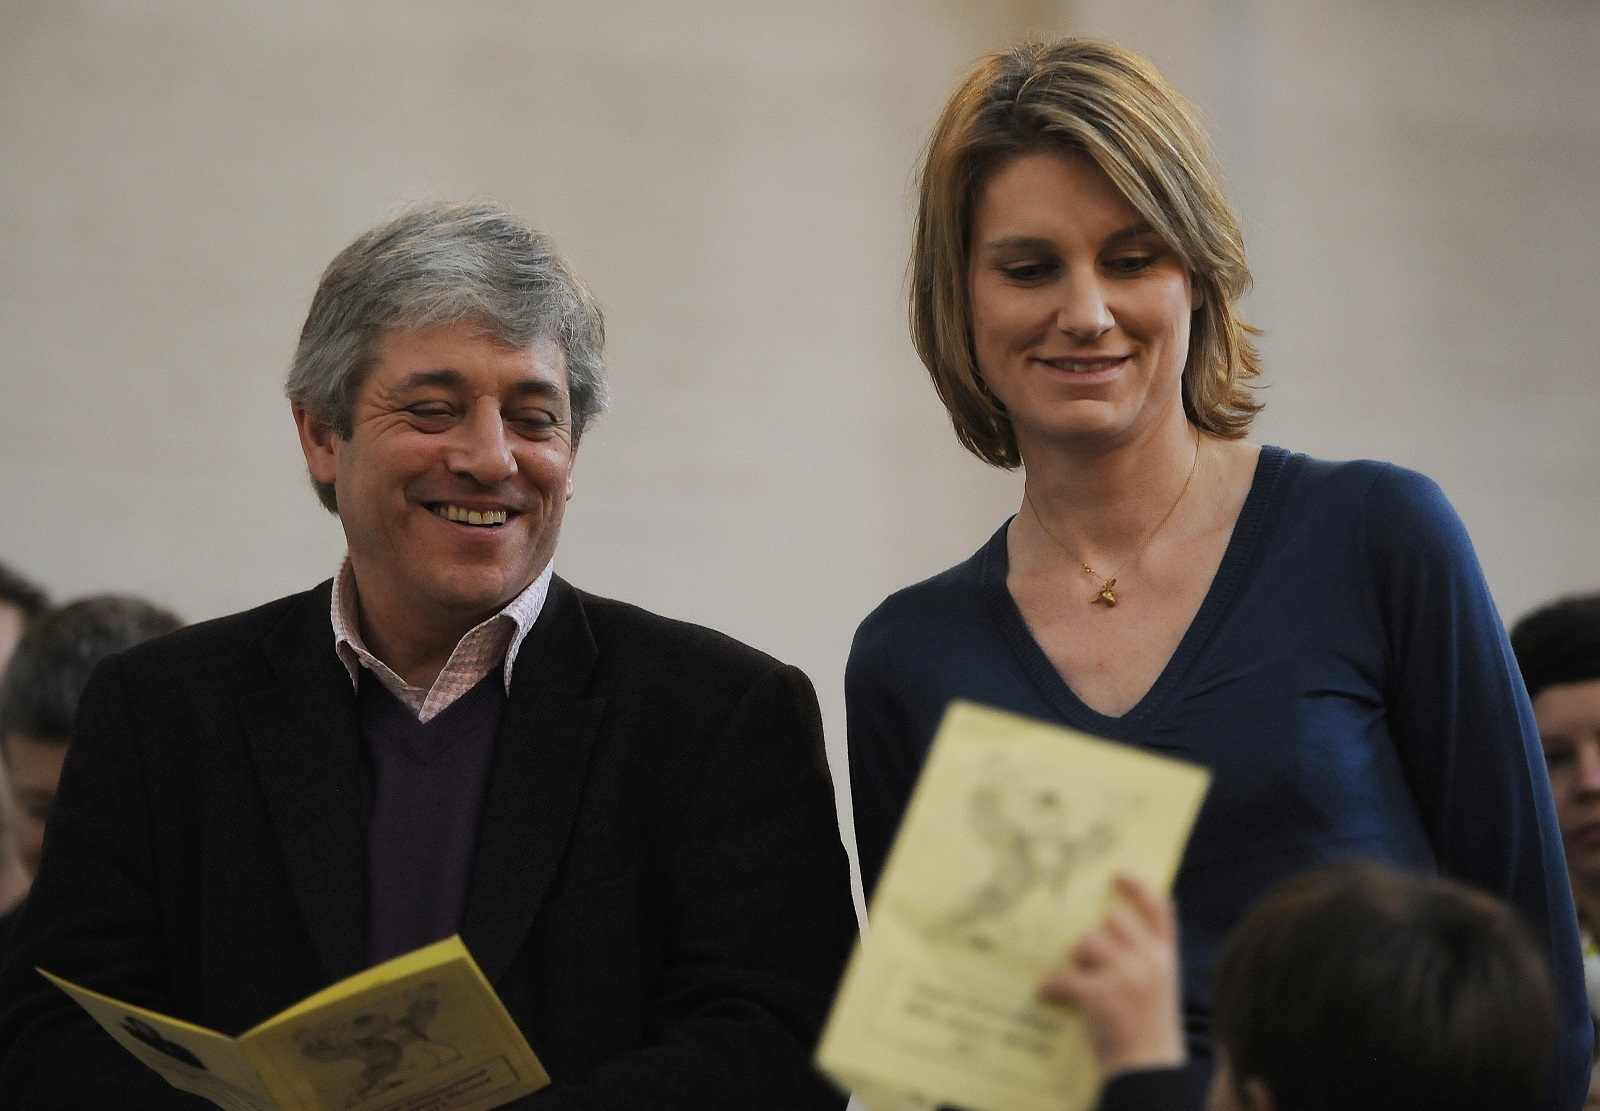 Sally and John Bercow